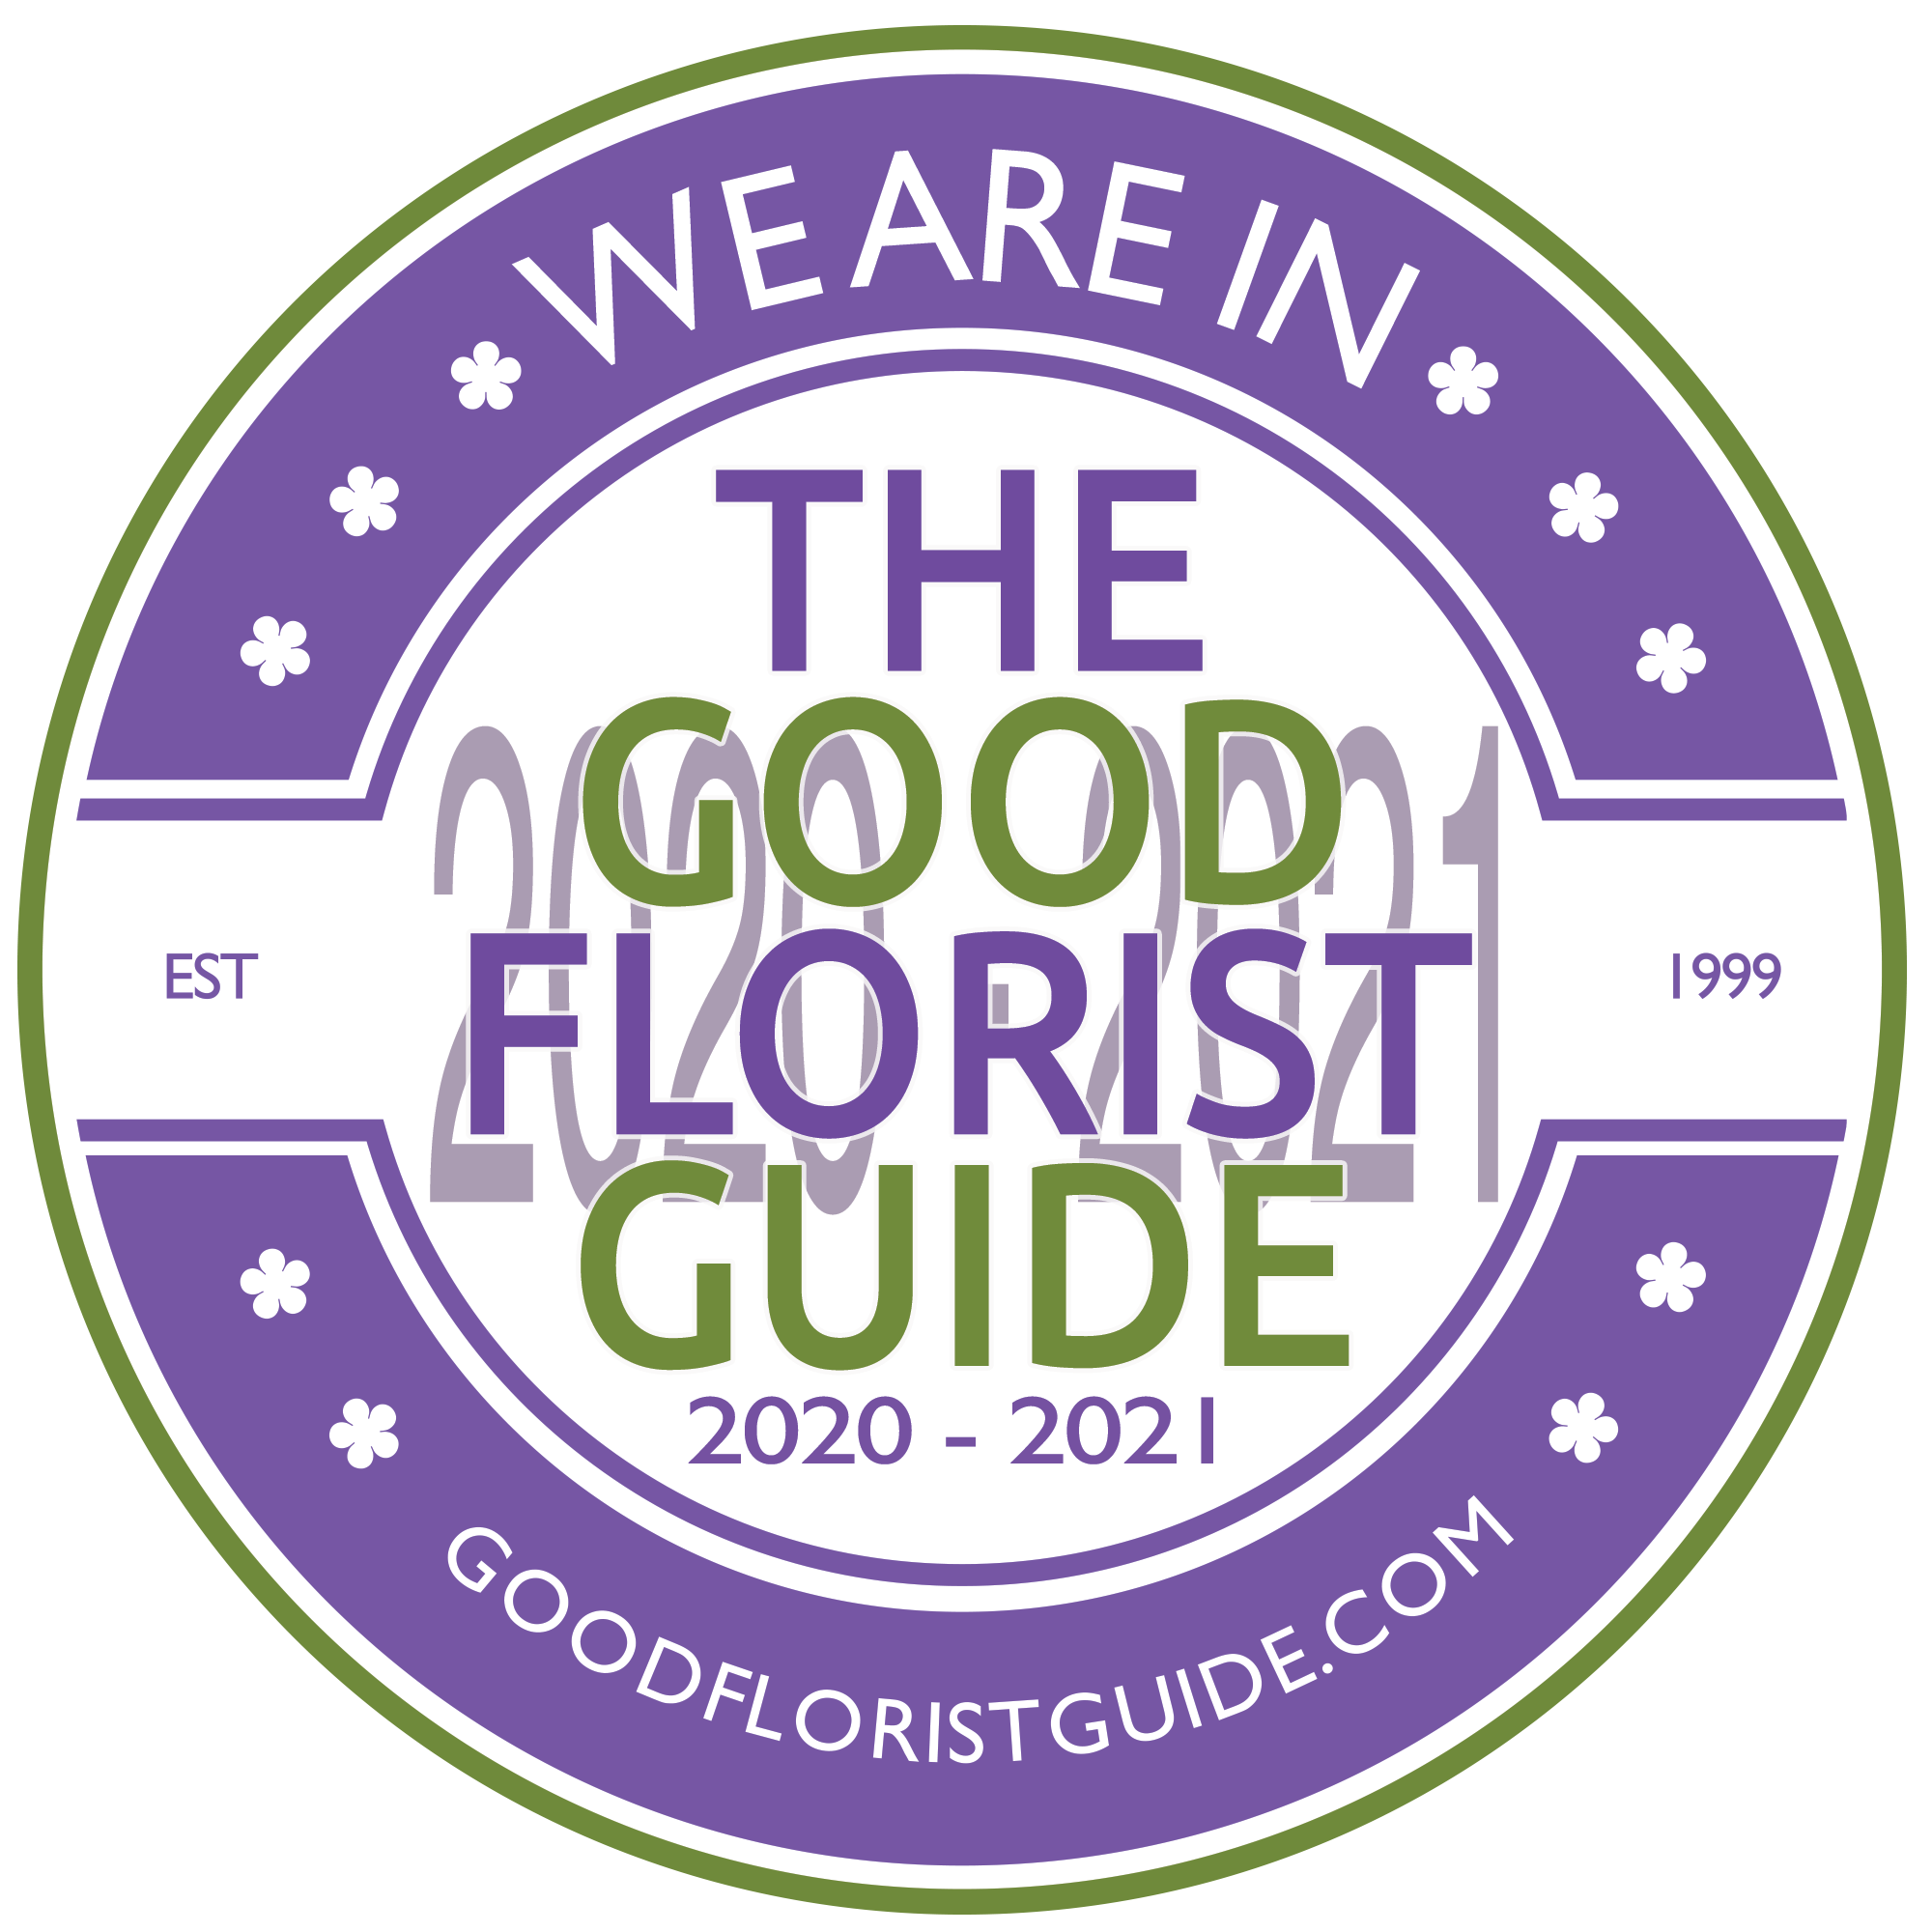 The Good Florist Guide 2020 - 2021